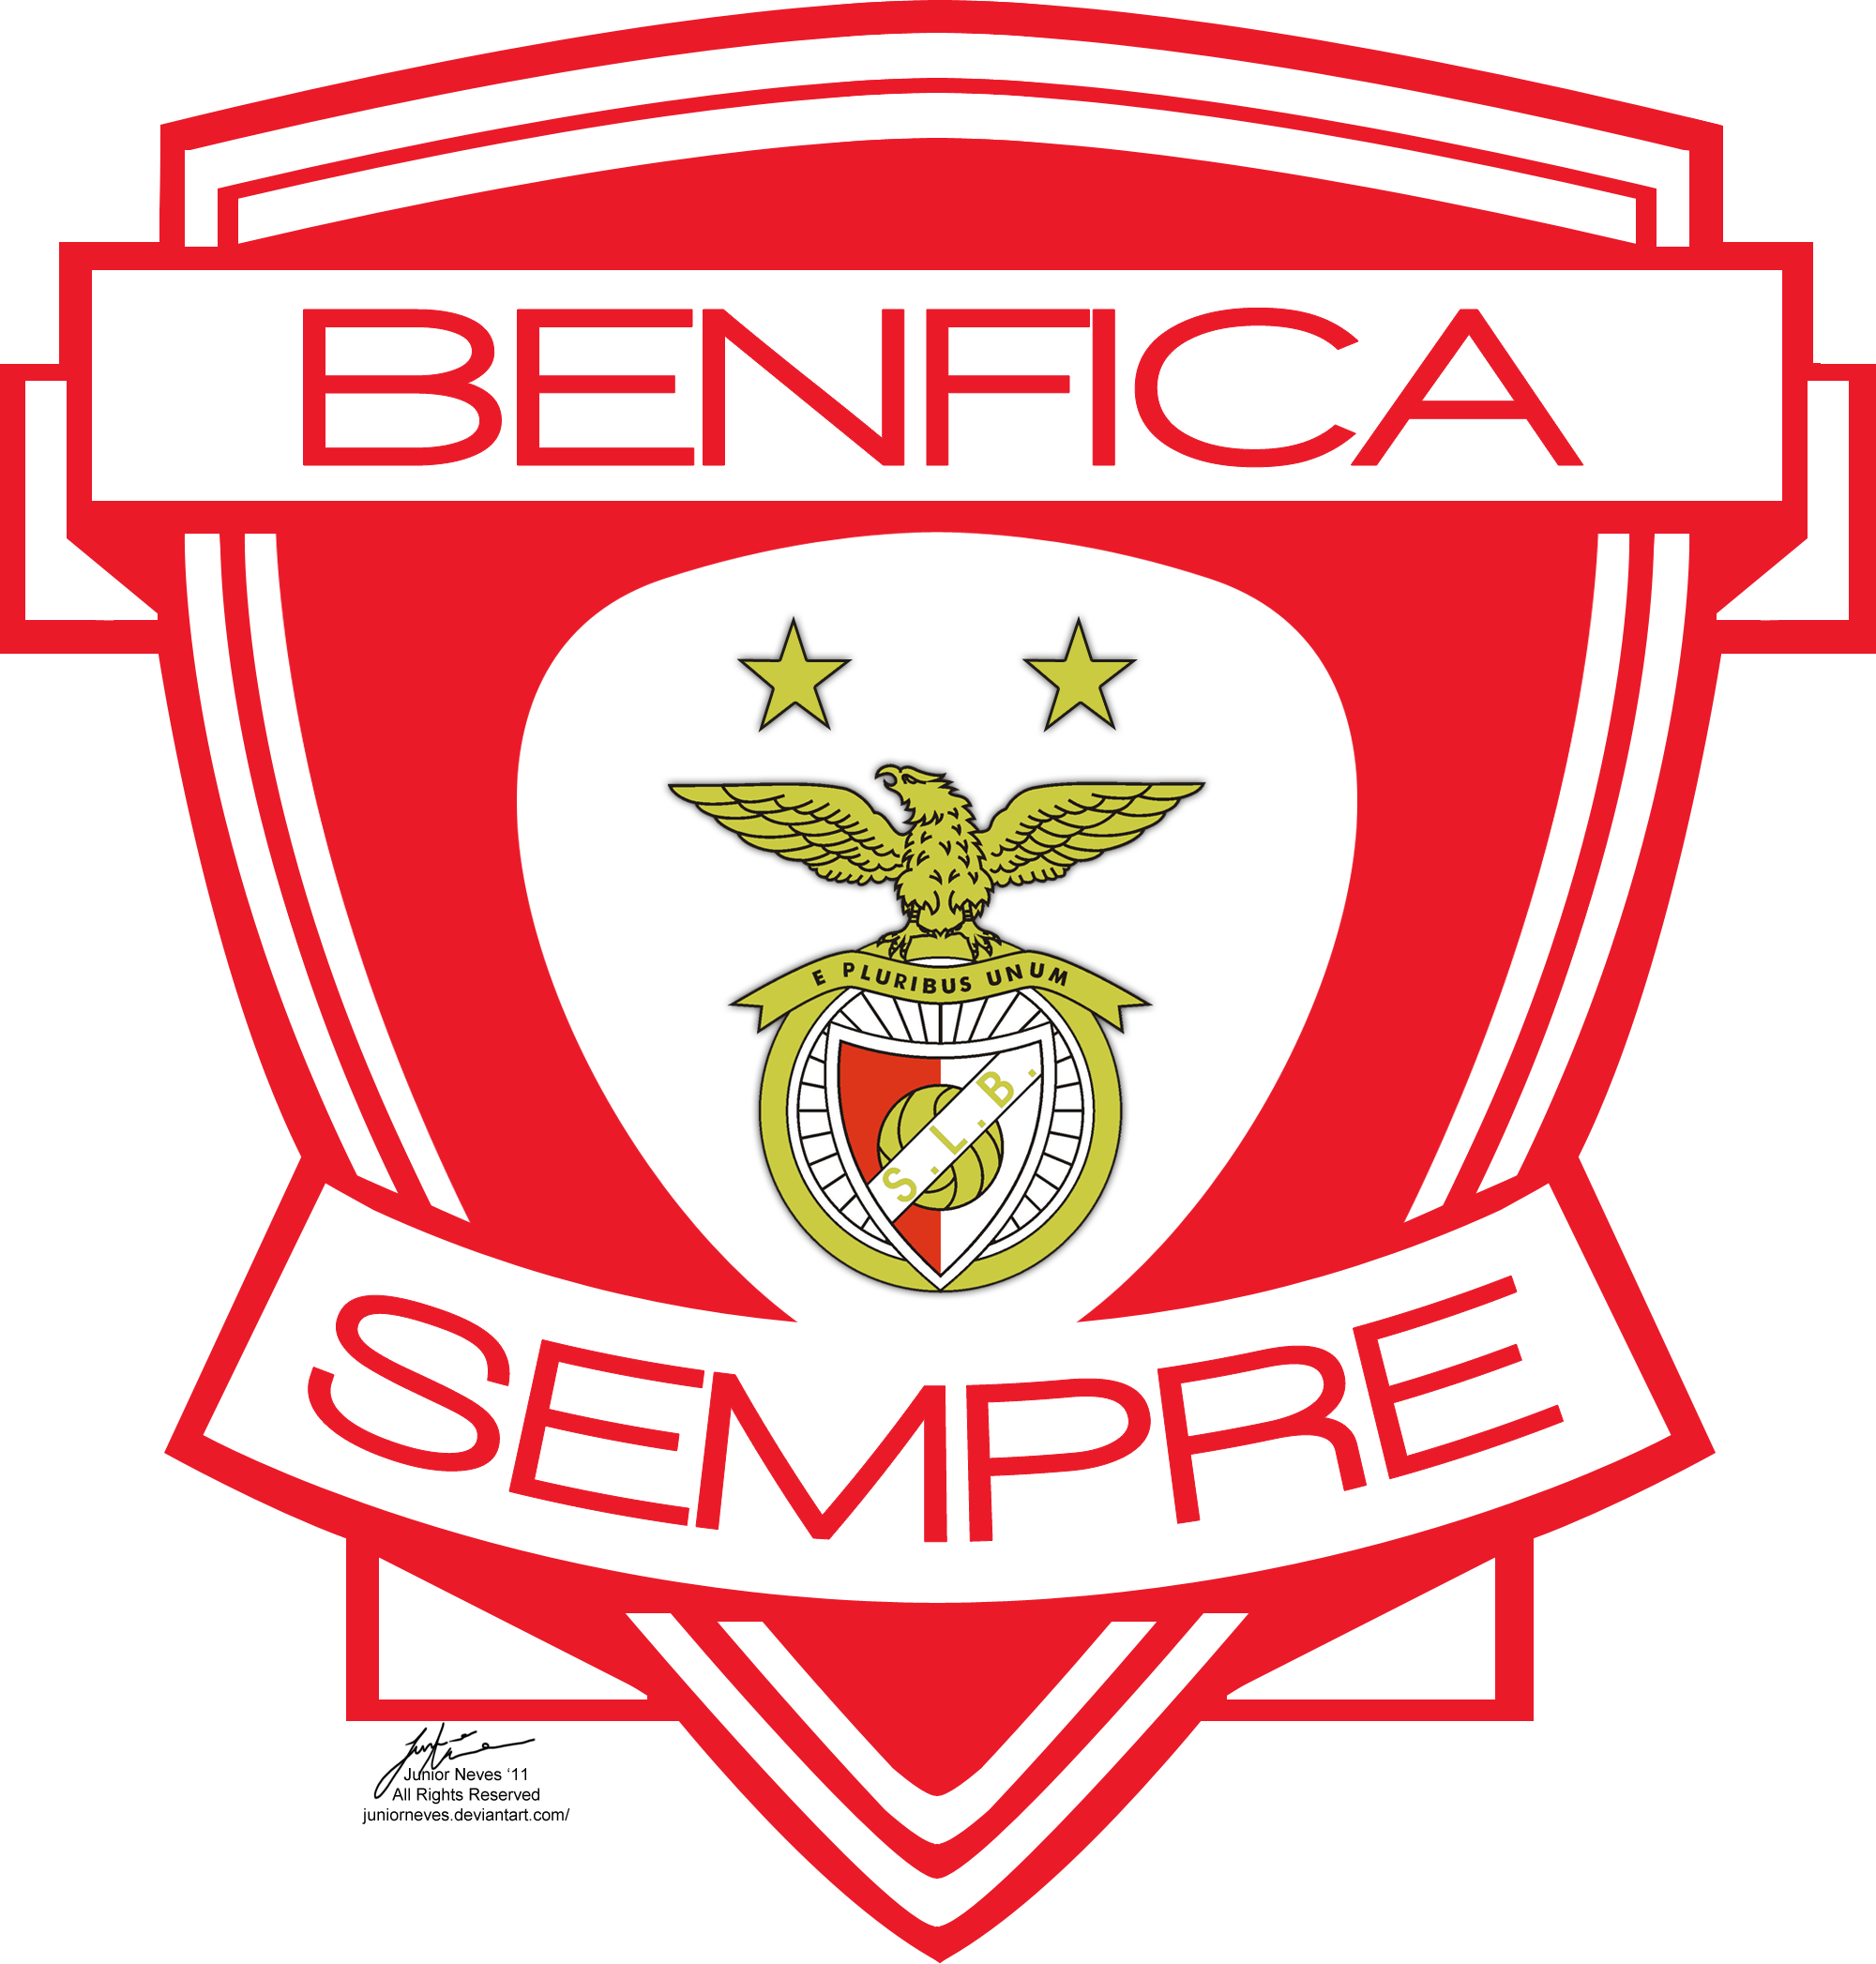 [Image: benfica_sempre_logo_by_juniorneves-d4dqzjp.png]